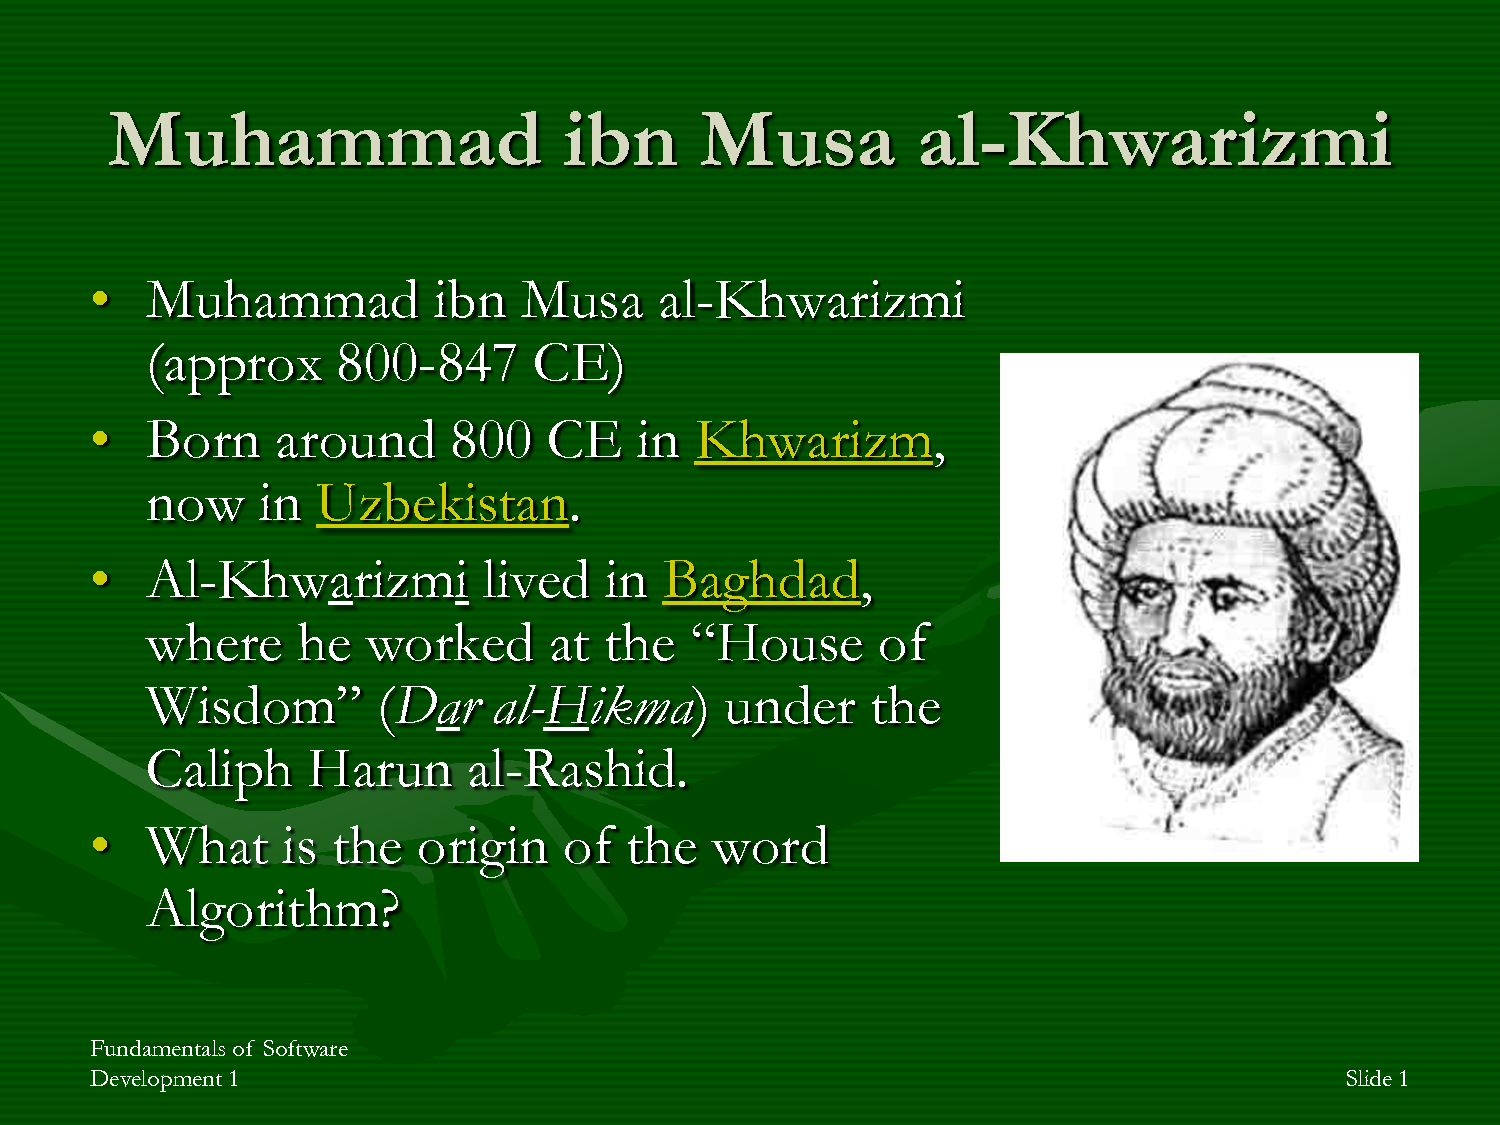 abu ja'far al khwarizmi Abu ja'far muhammad ibn musa al-khwarizmi al-khwarizmi was known for: writing major works on astronomy and mathematics that introduced hindu-arabic numerals and the idea of algebra to european scholars.